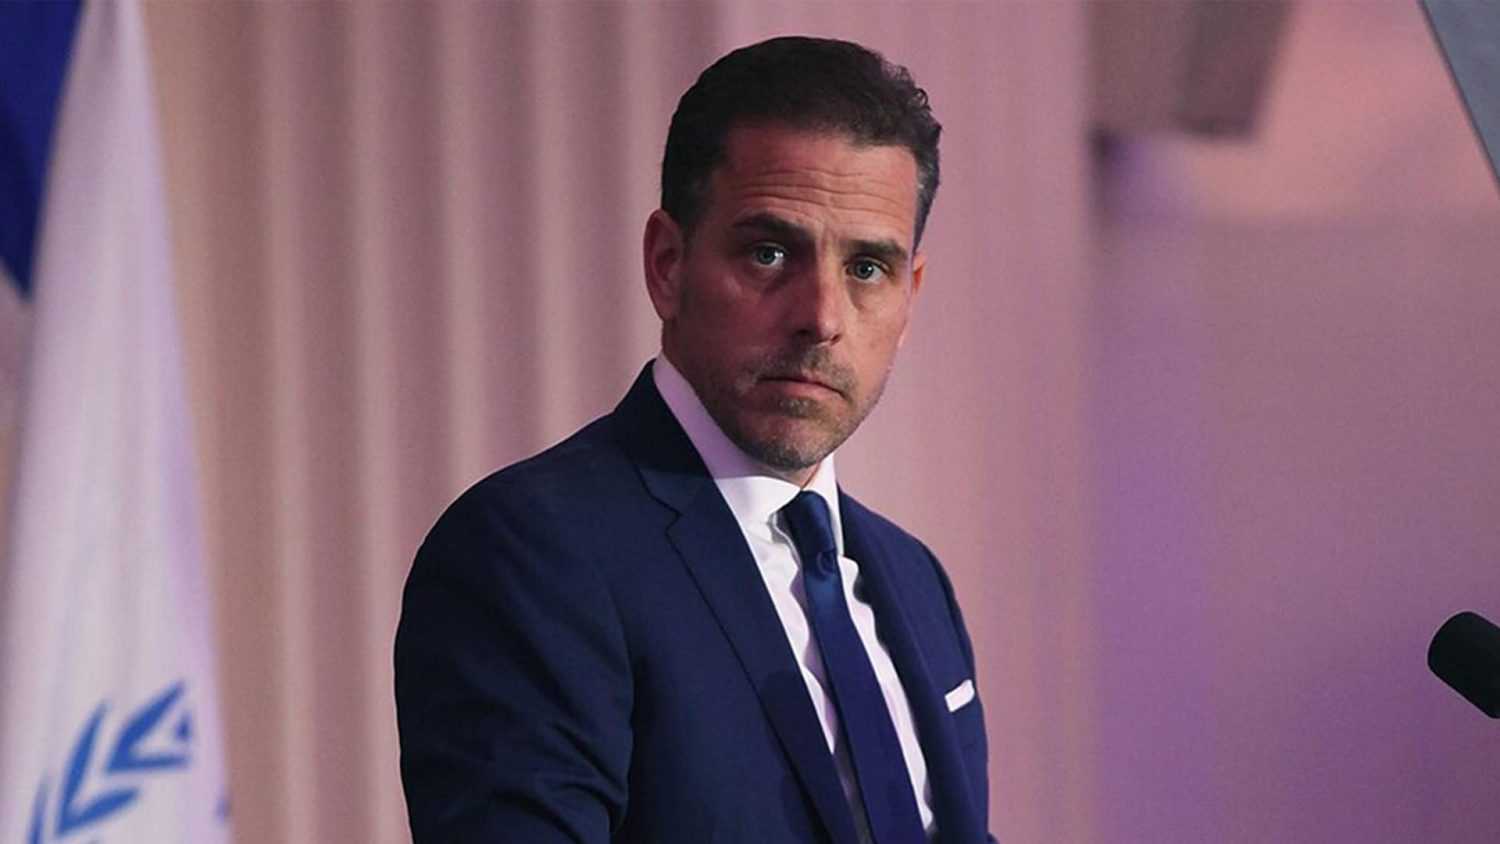 laptop connected to hunter biden linked to fbi money-laundering probe